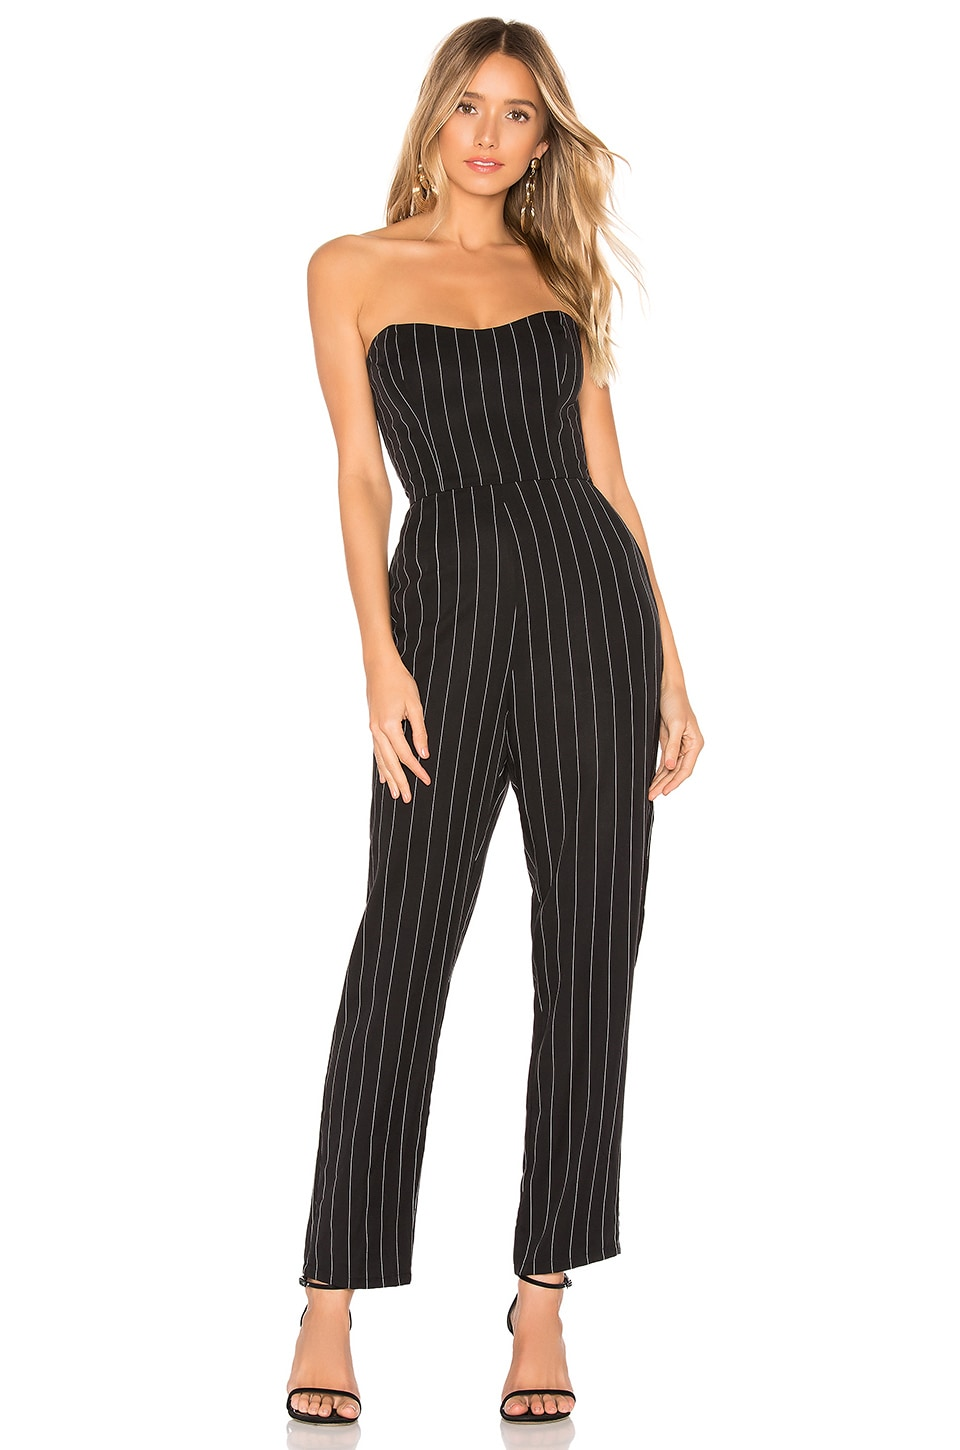 Lovers + Friends Cohen Jumpsuit in Black